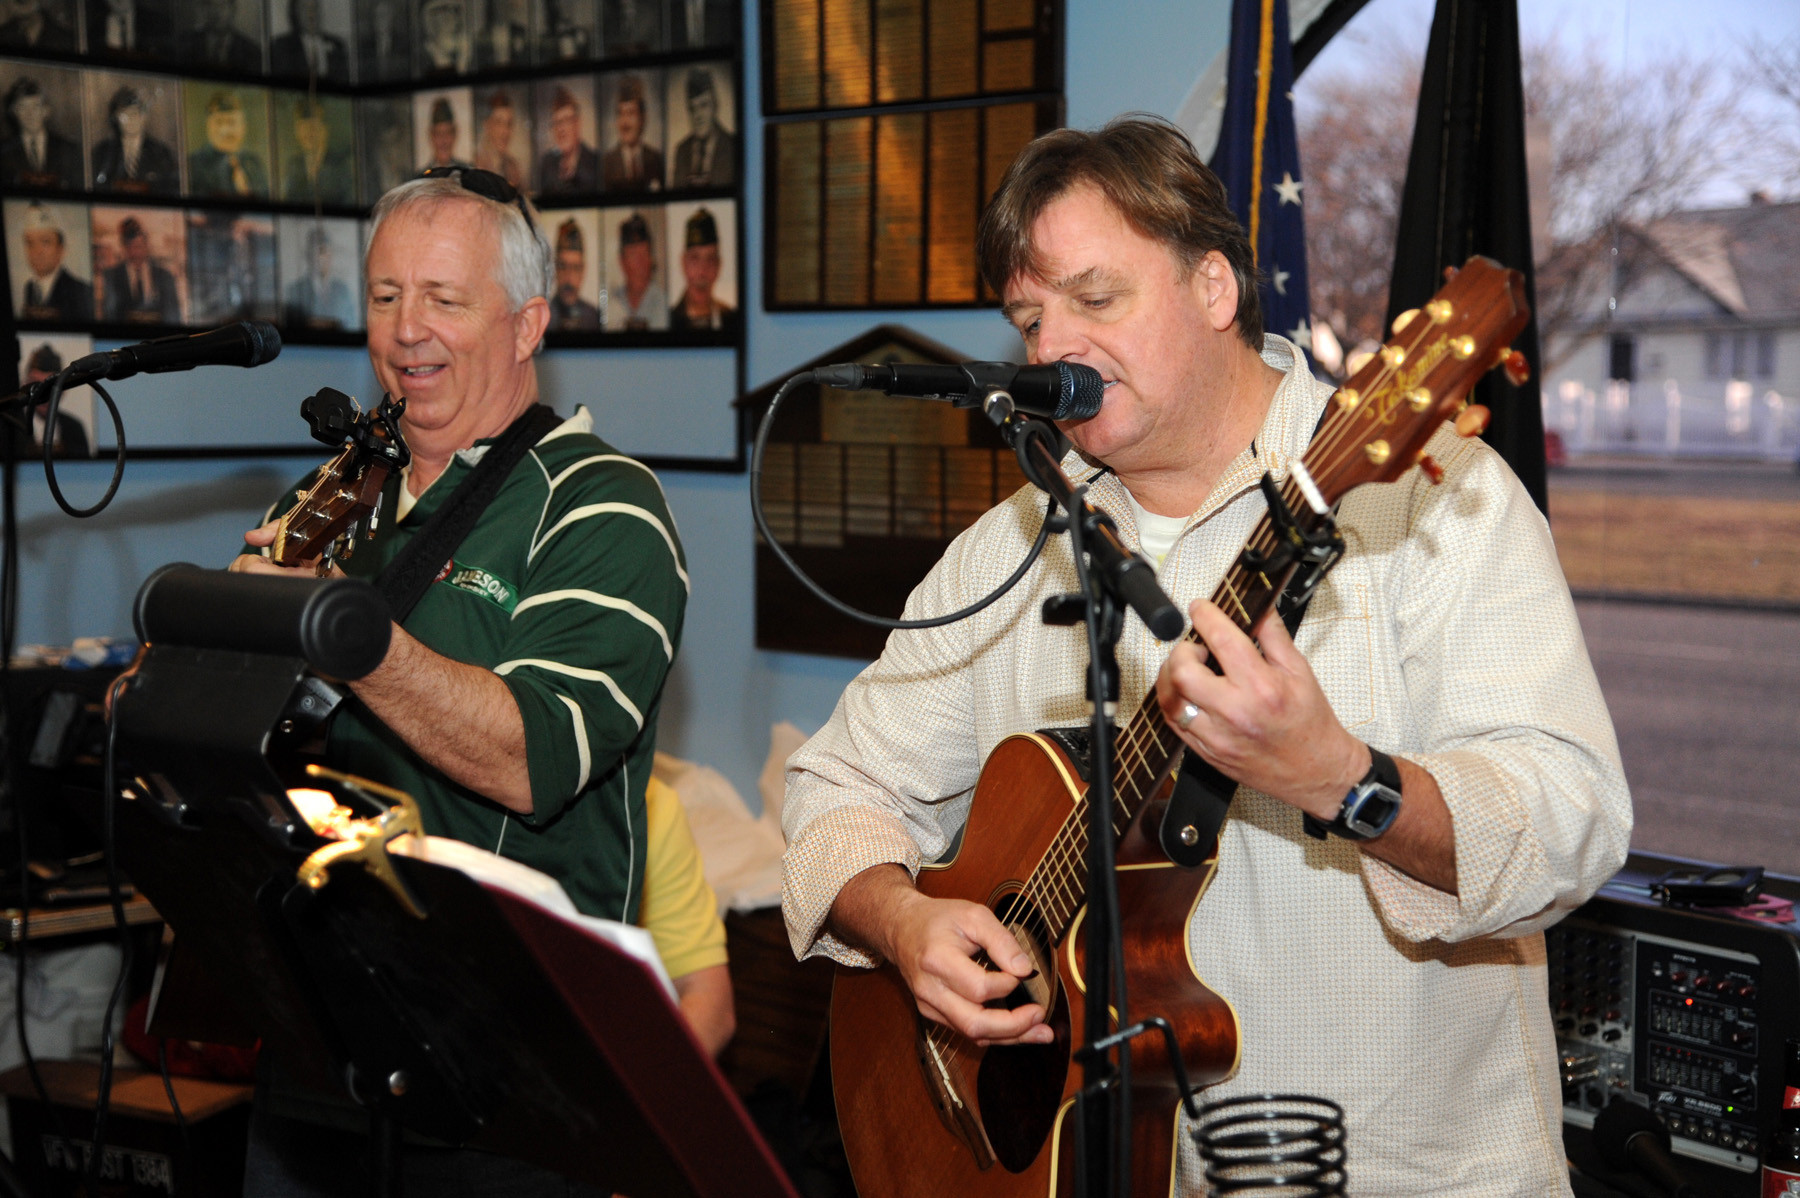 Rick Rempe and Brian Monaghan performed at the Shine�s fundraiser at the VFW last Saturday.